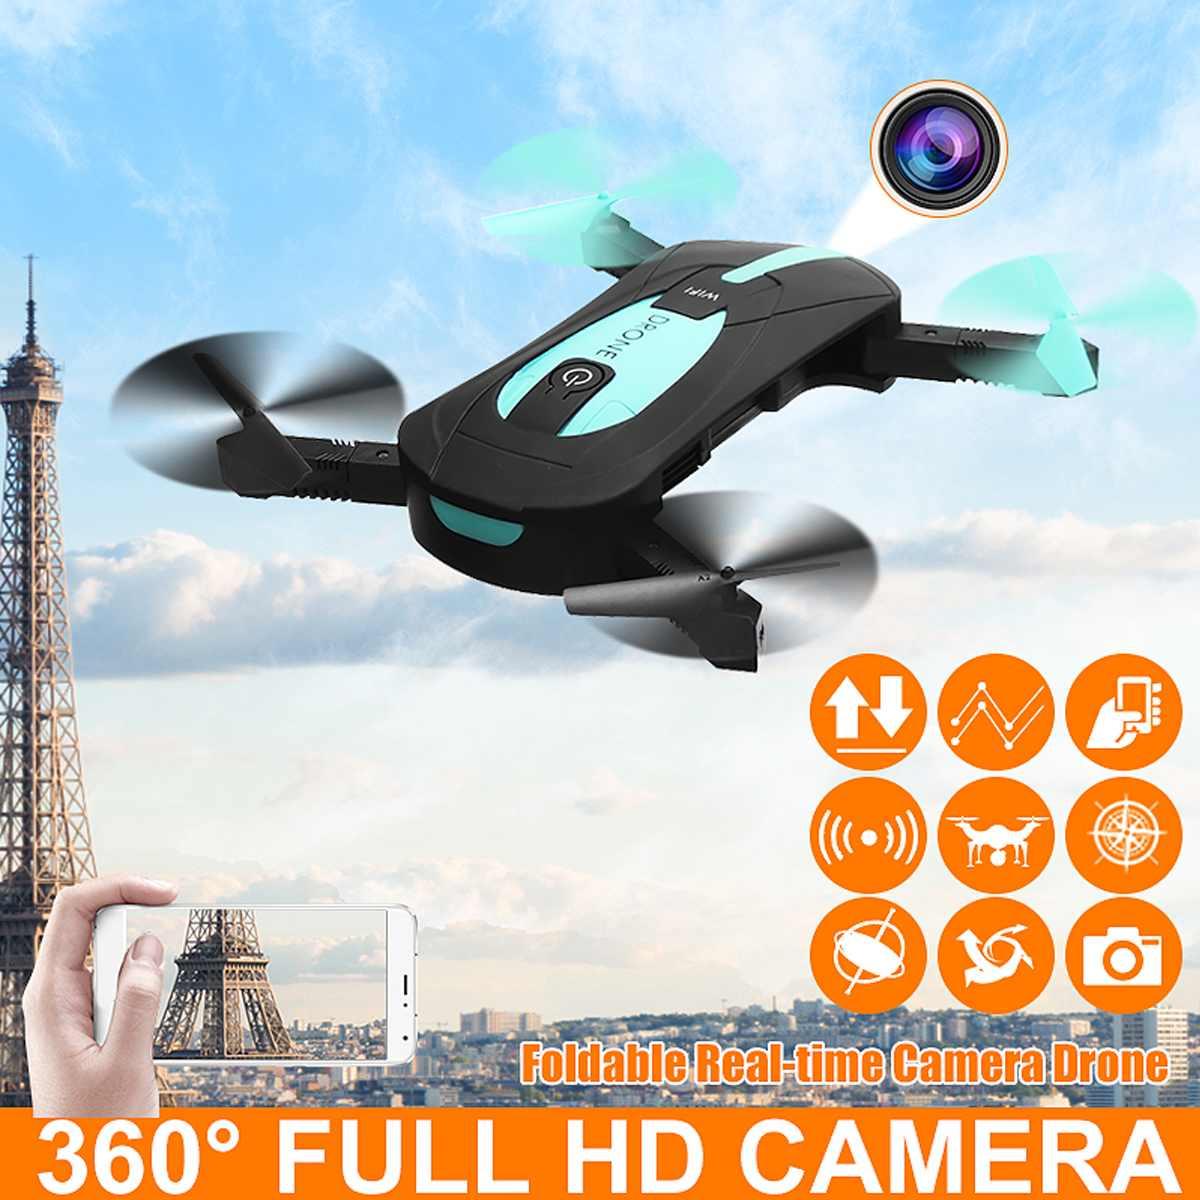 Jy018 Rc Drone With Full Hd Camera Mini Foldable Wifi Fpv